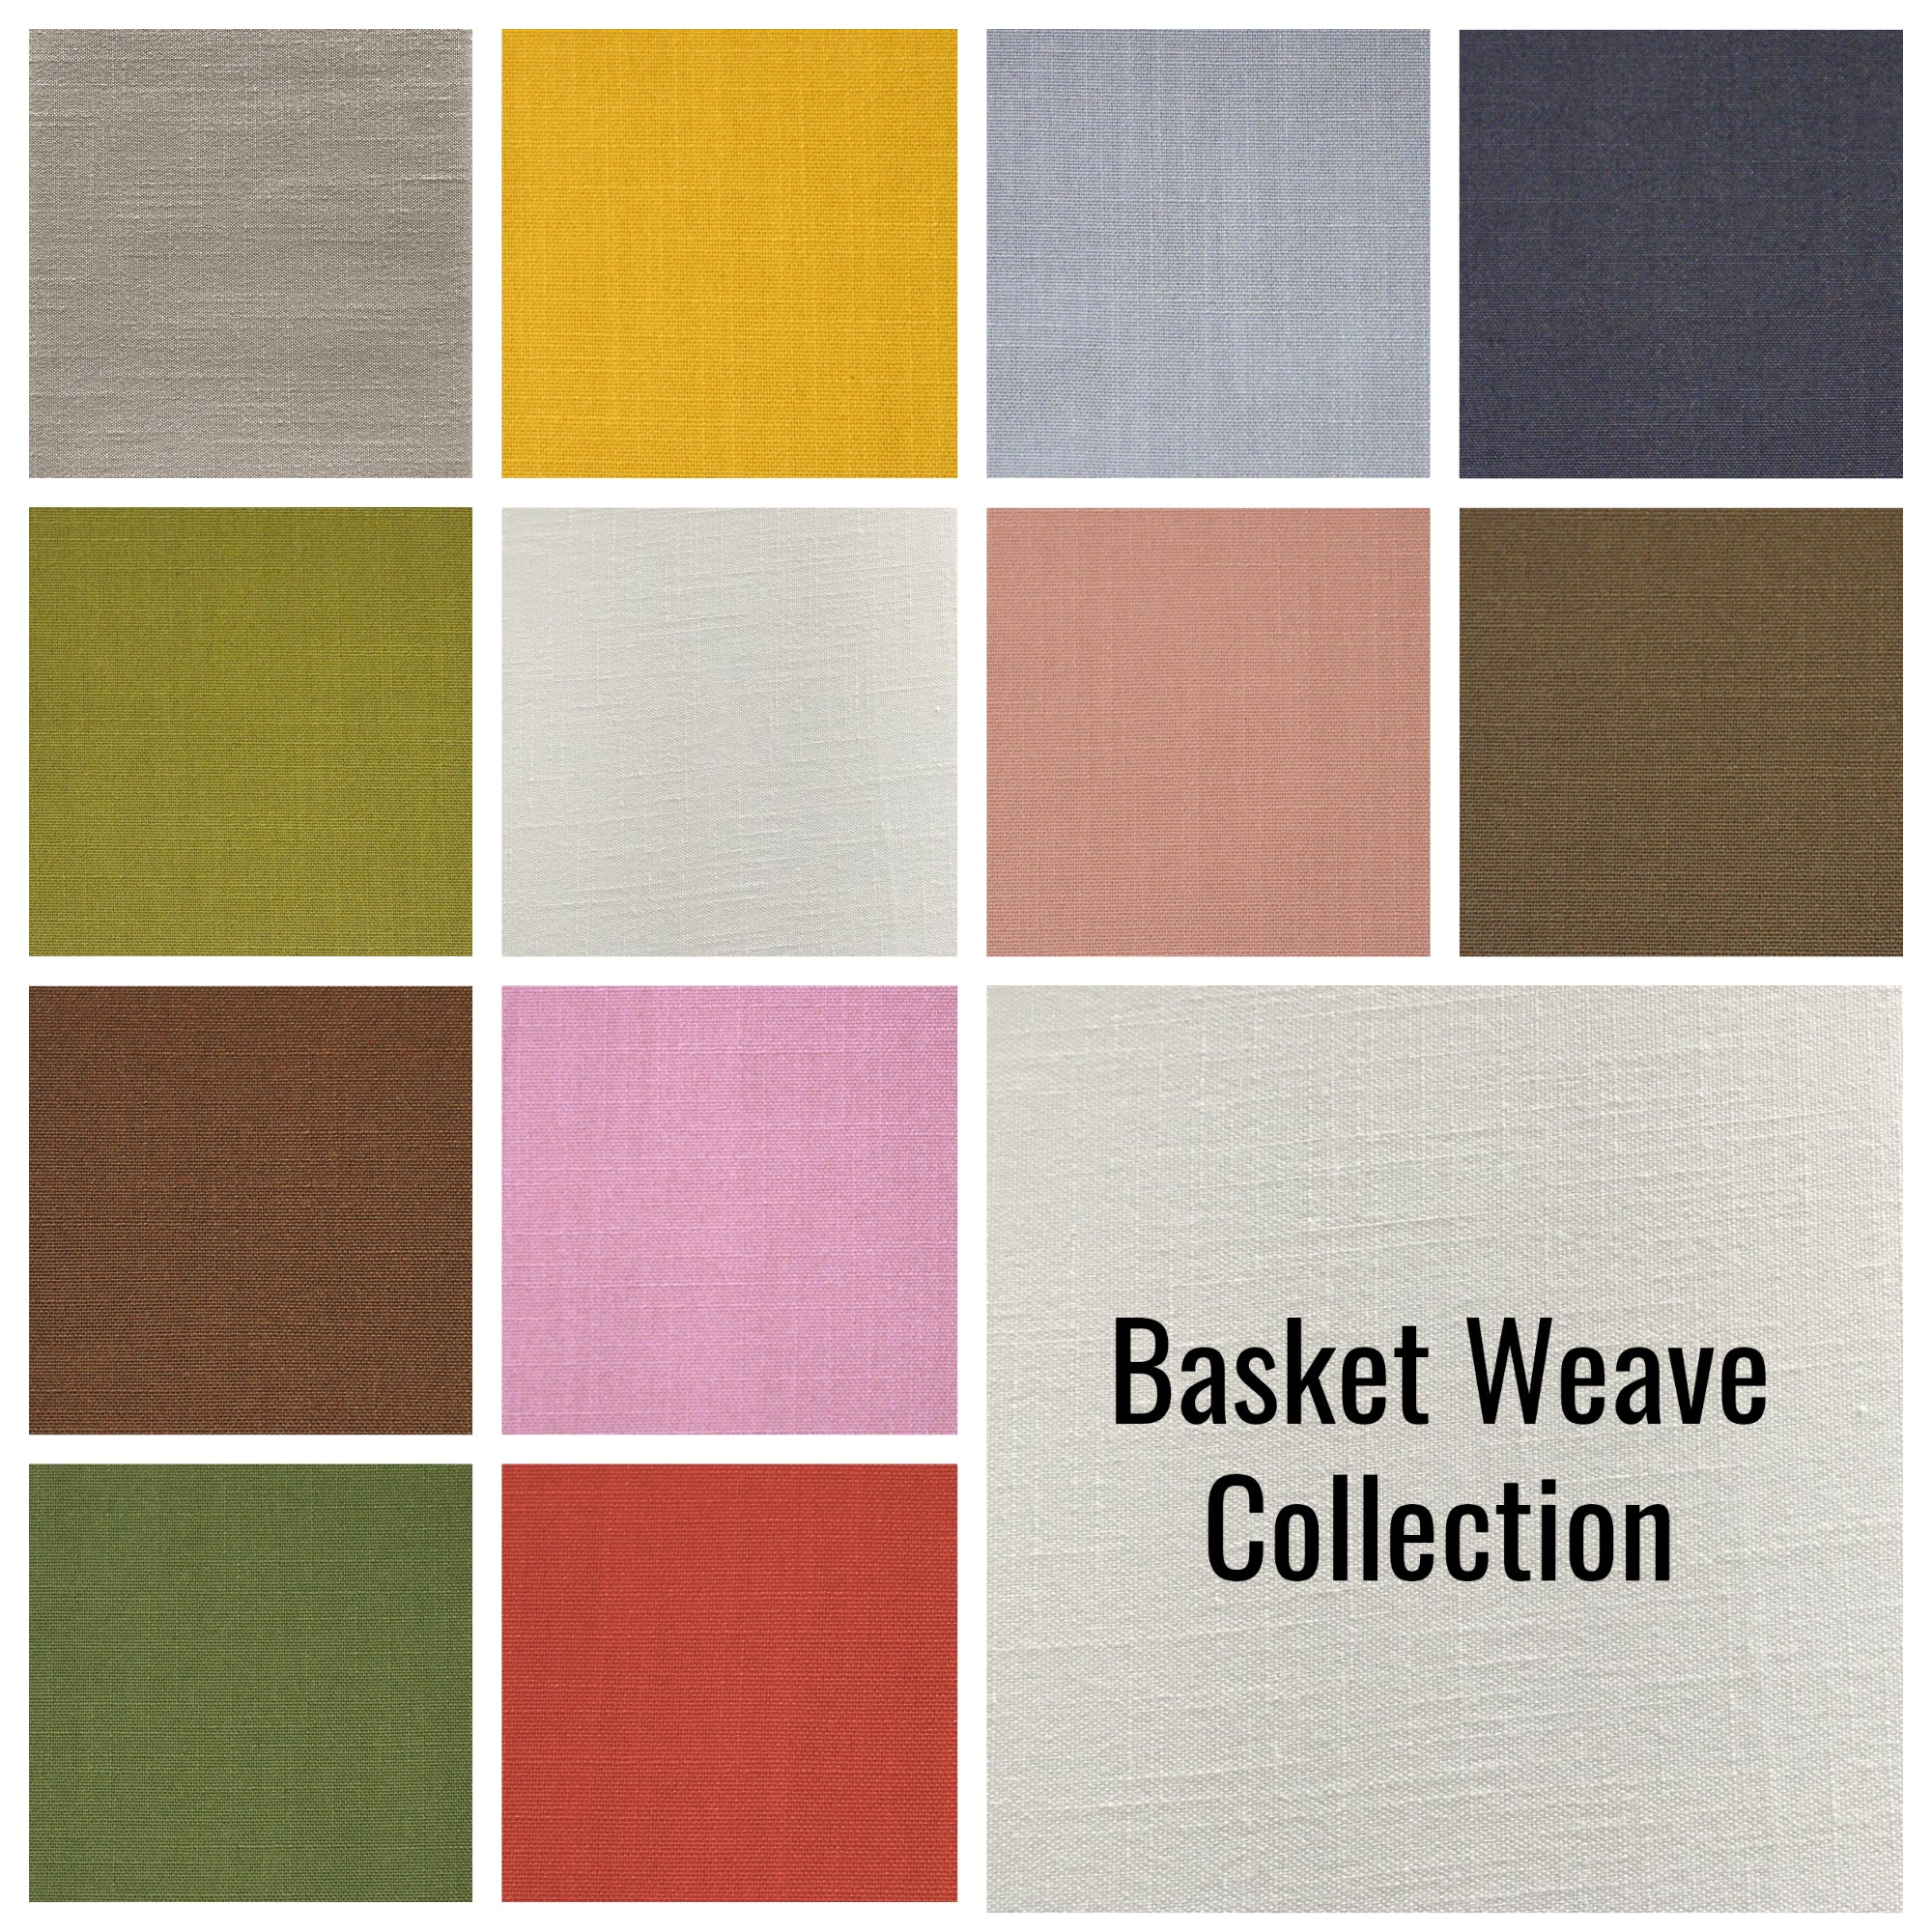 Basket Weave Collection